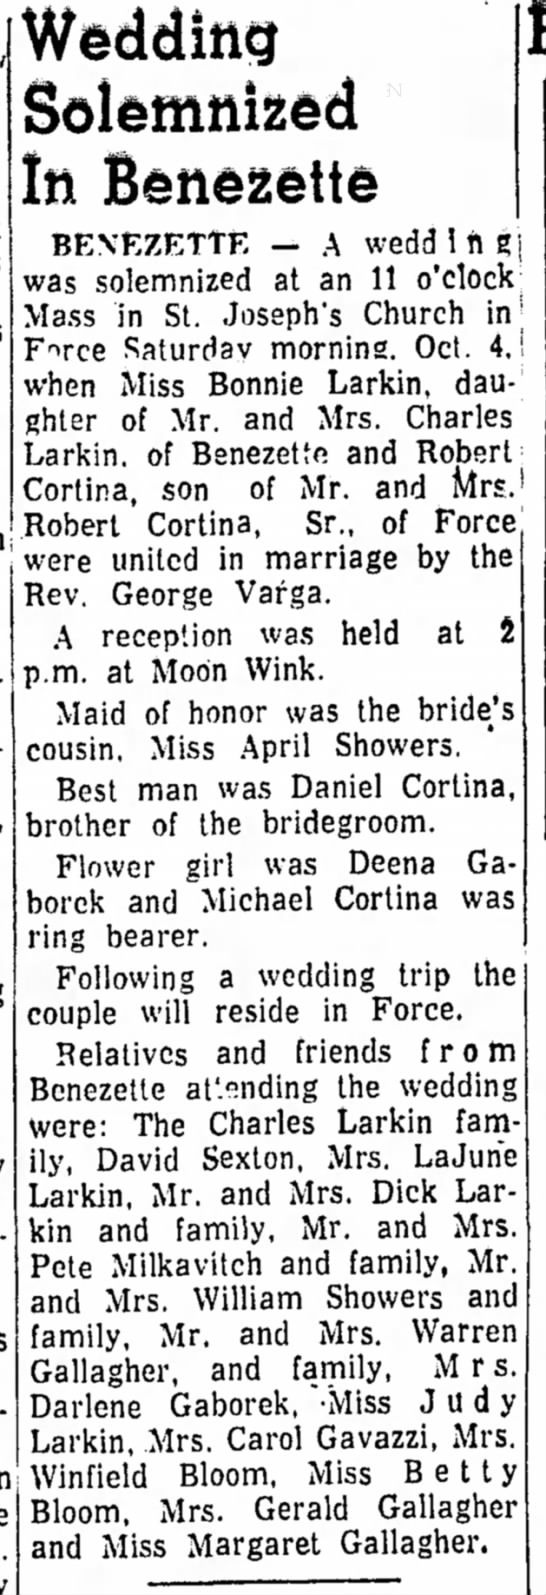 Bonnie Larkin Wedding daughter of Charles Larkin - Wedding Solemnized In Benezette BENEZETTE — A...